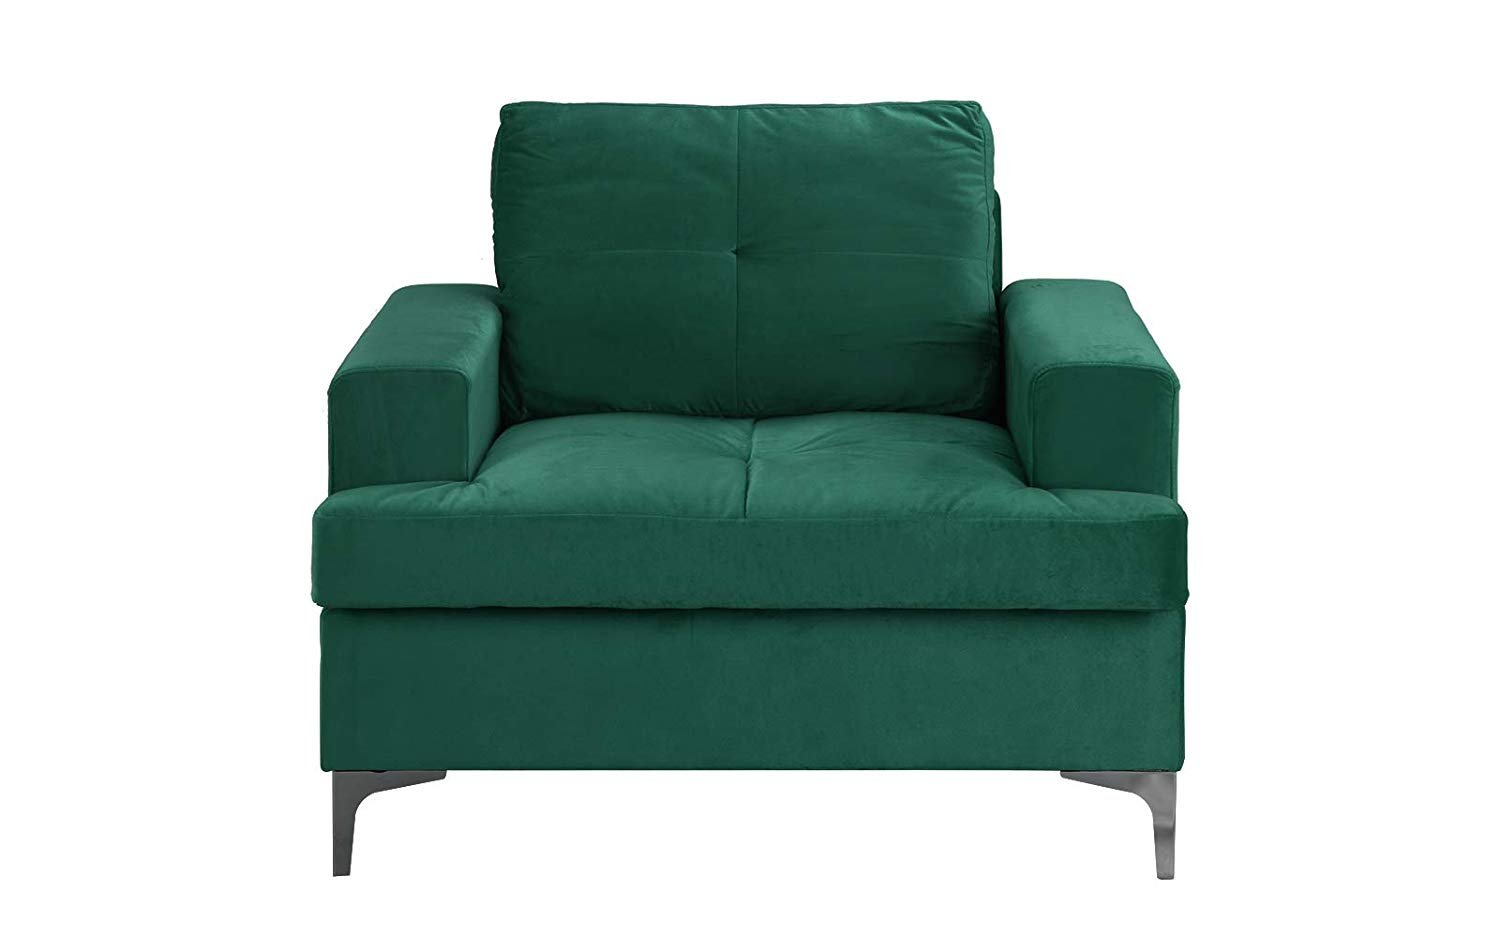 Details About Mid Century Modern Velvet Fabric Armchair Living Room Accent Arm Chair Green